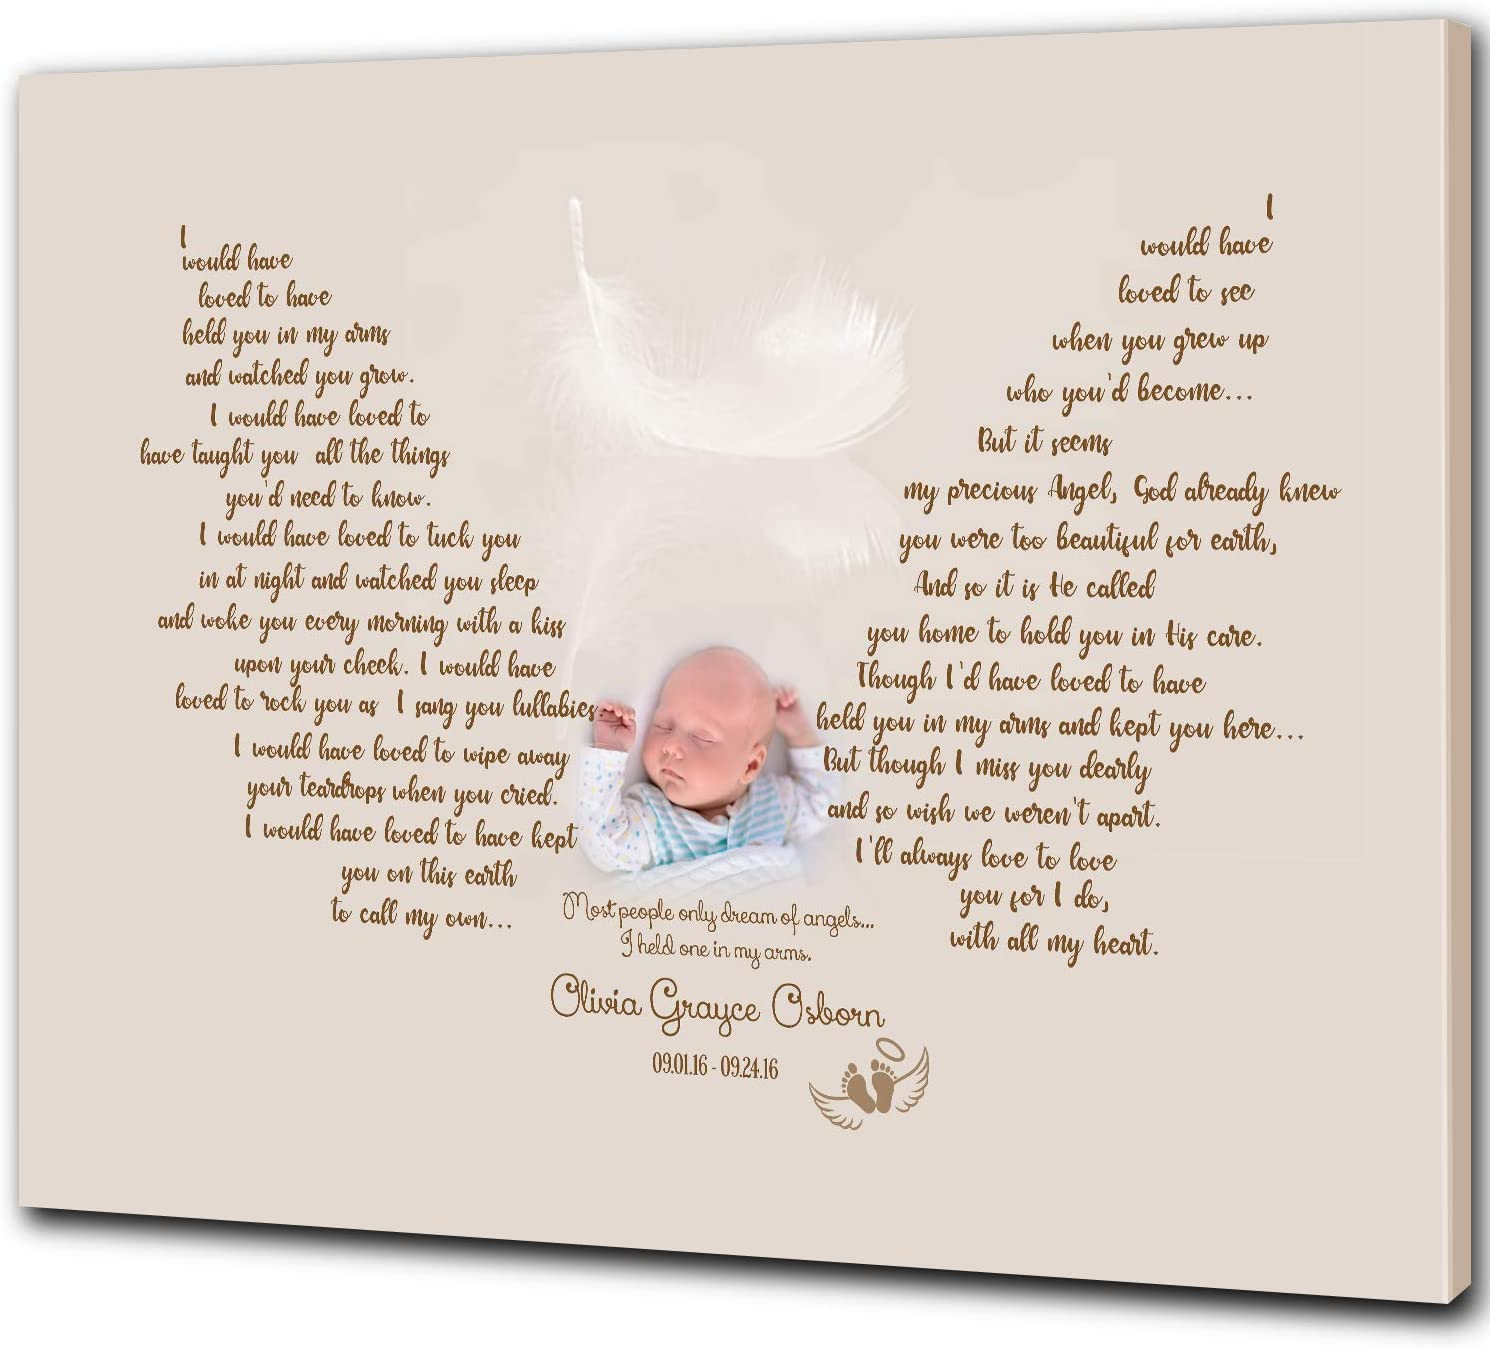 Personalized Memorial ラッピング無料 Canvas Wall Art 人気上昇中 Pe In Most Loving Memory